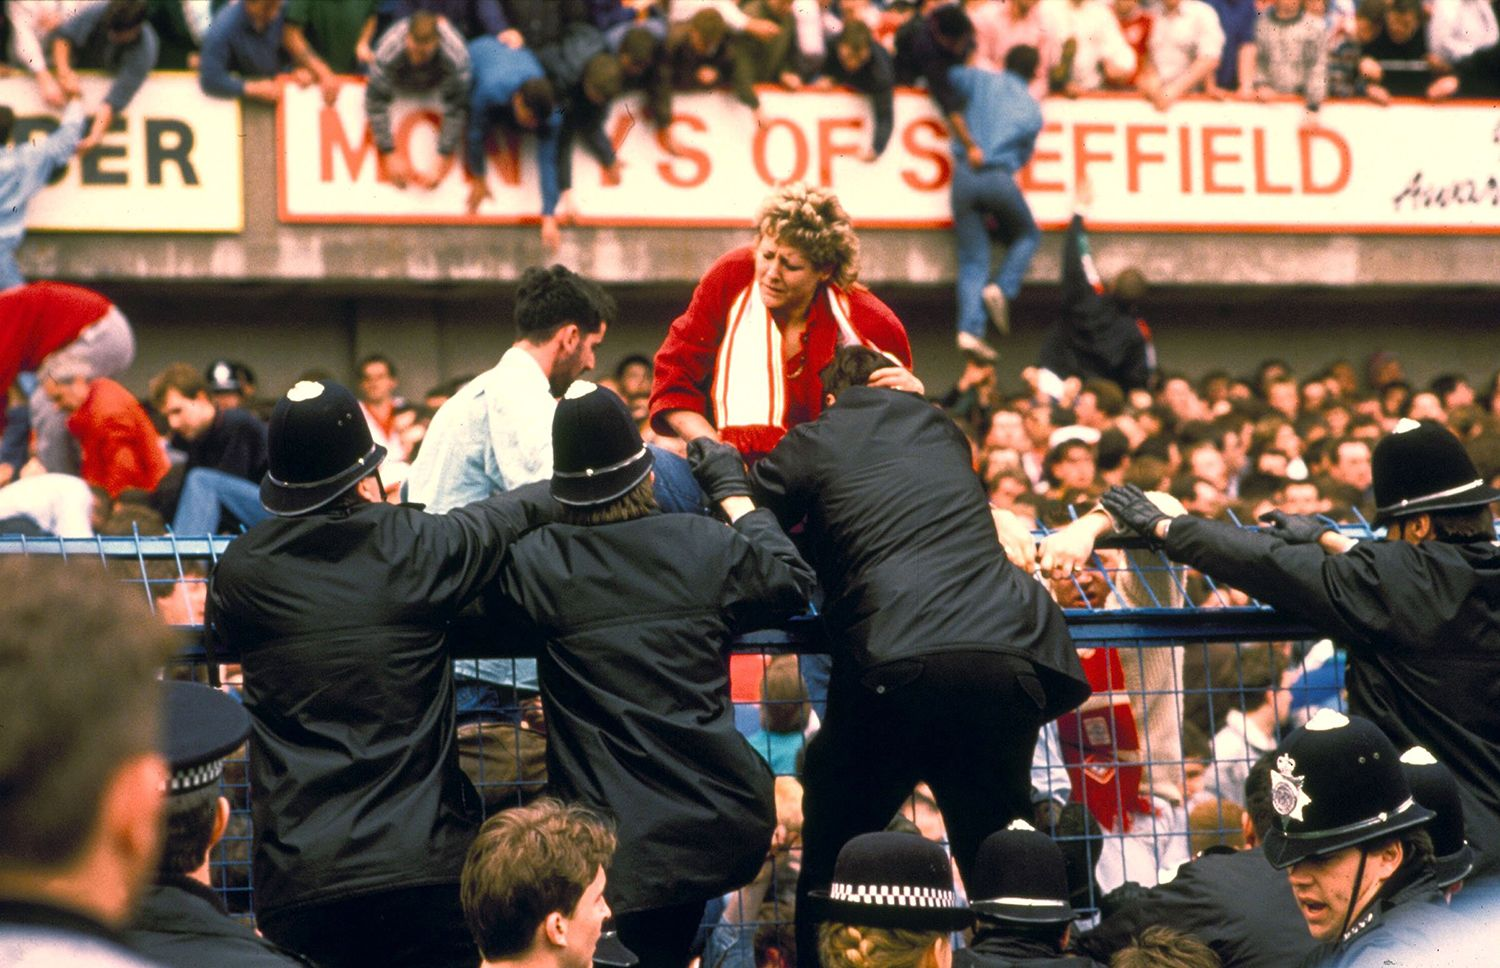 hillsborough disaster Today the crown prosecution service (cps) confirmed six people will be  charged over the hillsborough disaster they are.